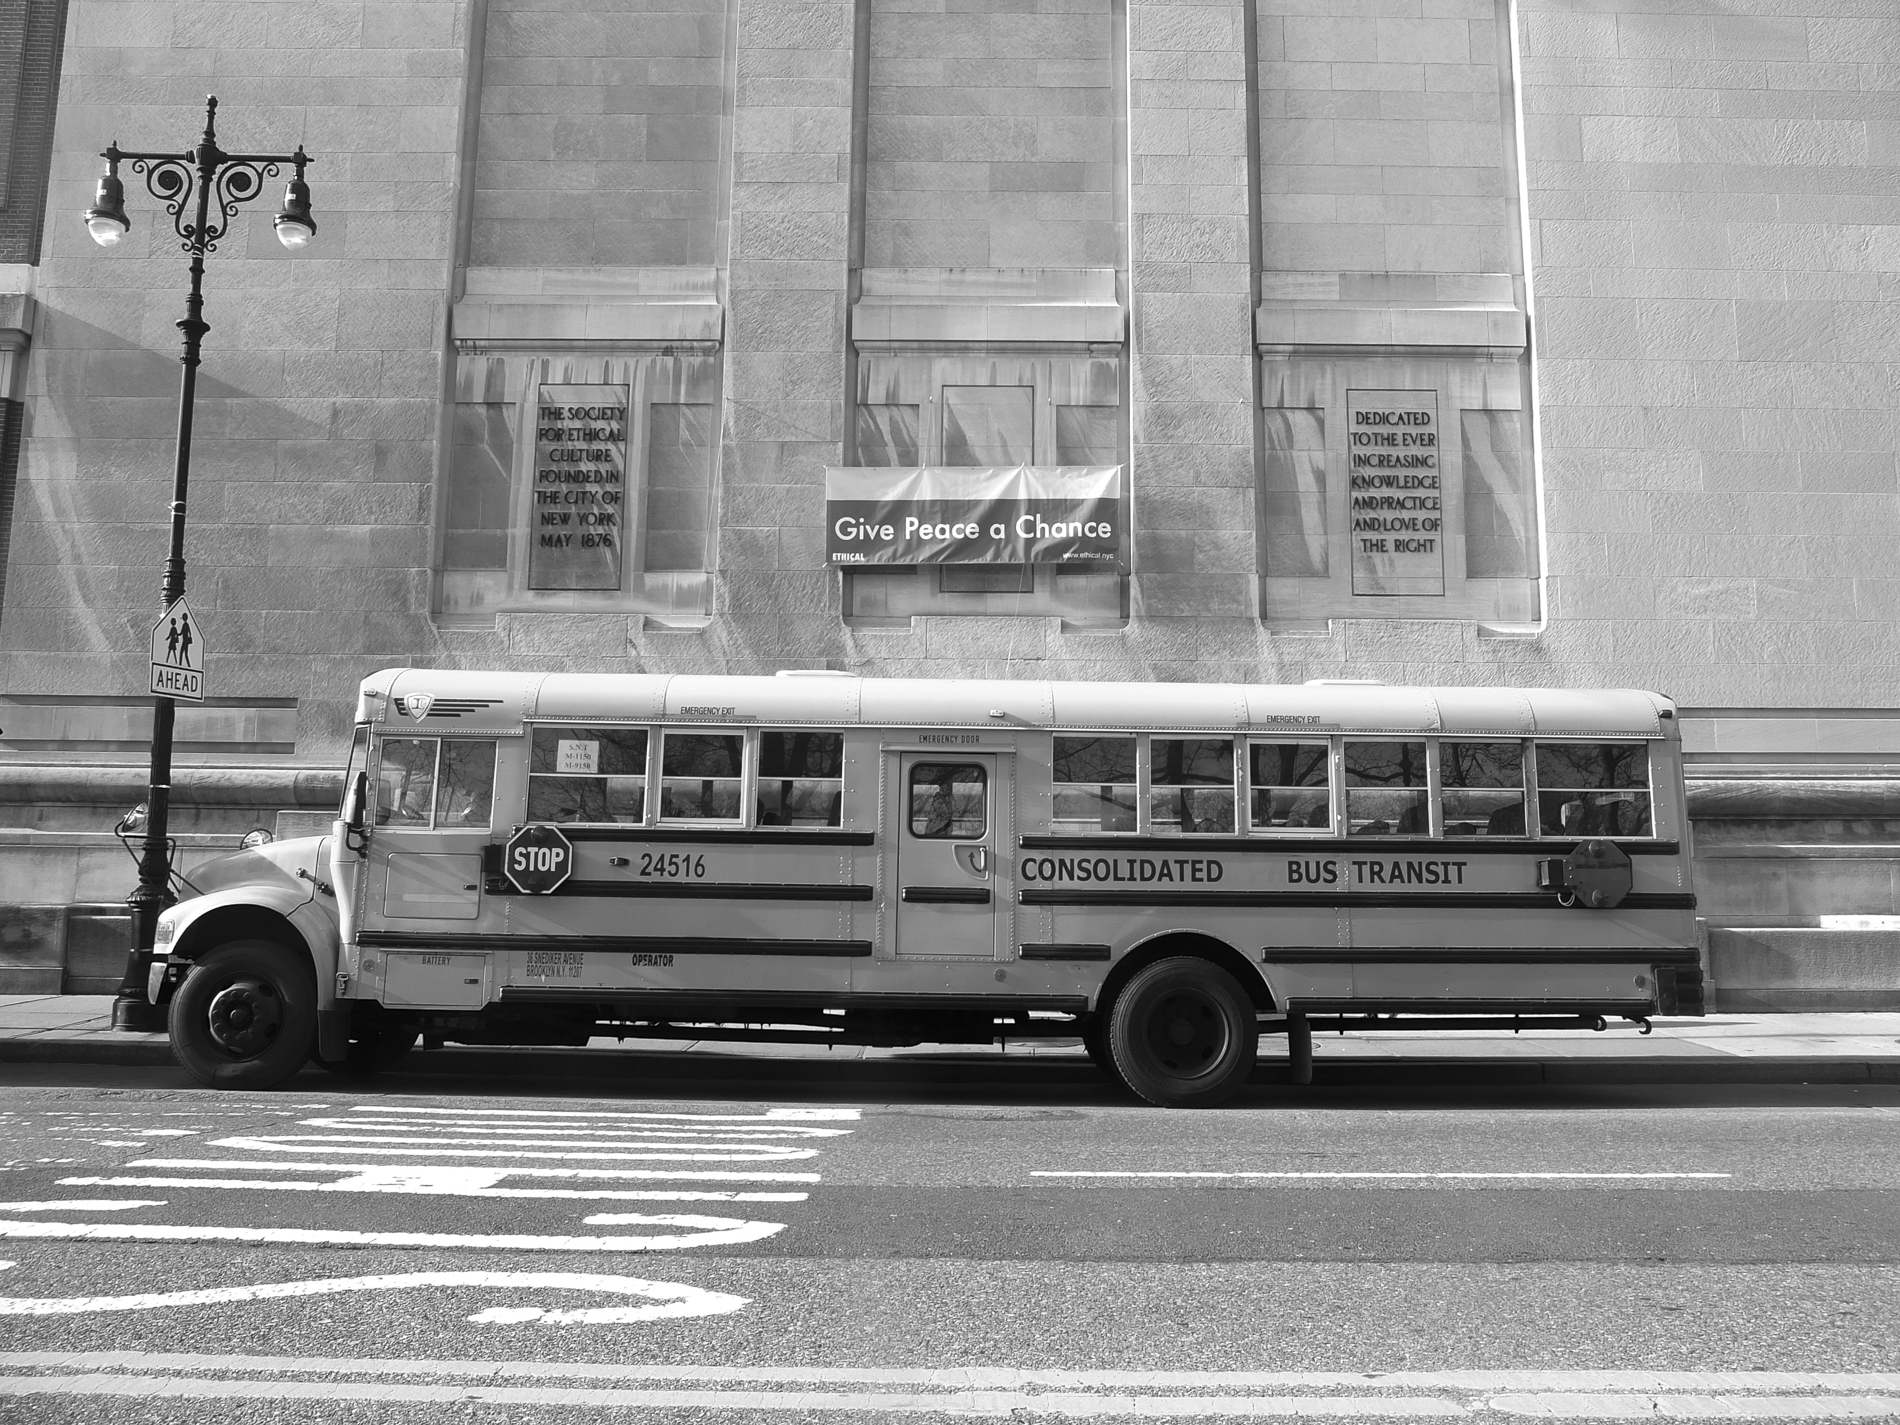 New York School Bus @ Central Park